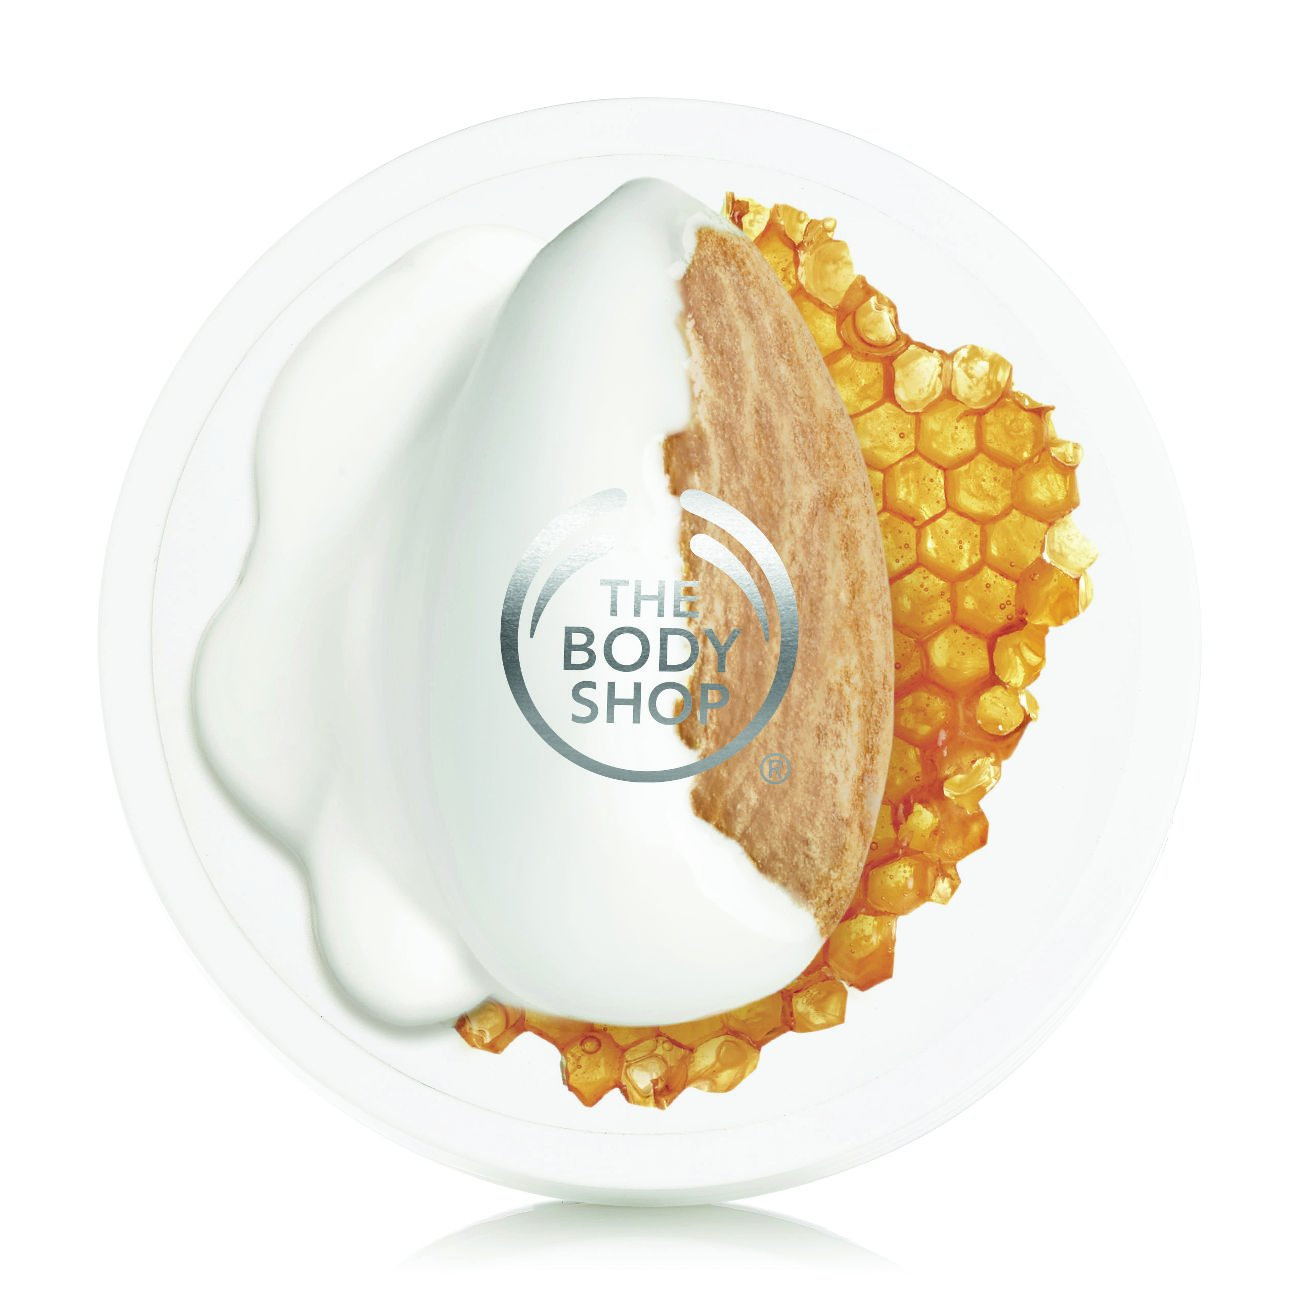 The Body Shop Almond Milk & Honey Body Butter, For Sensitive, Dry Skin, 6.9 Oz. by The Body Shop